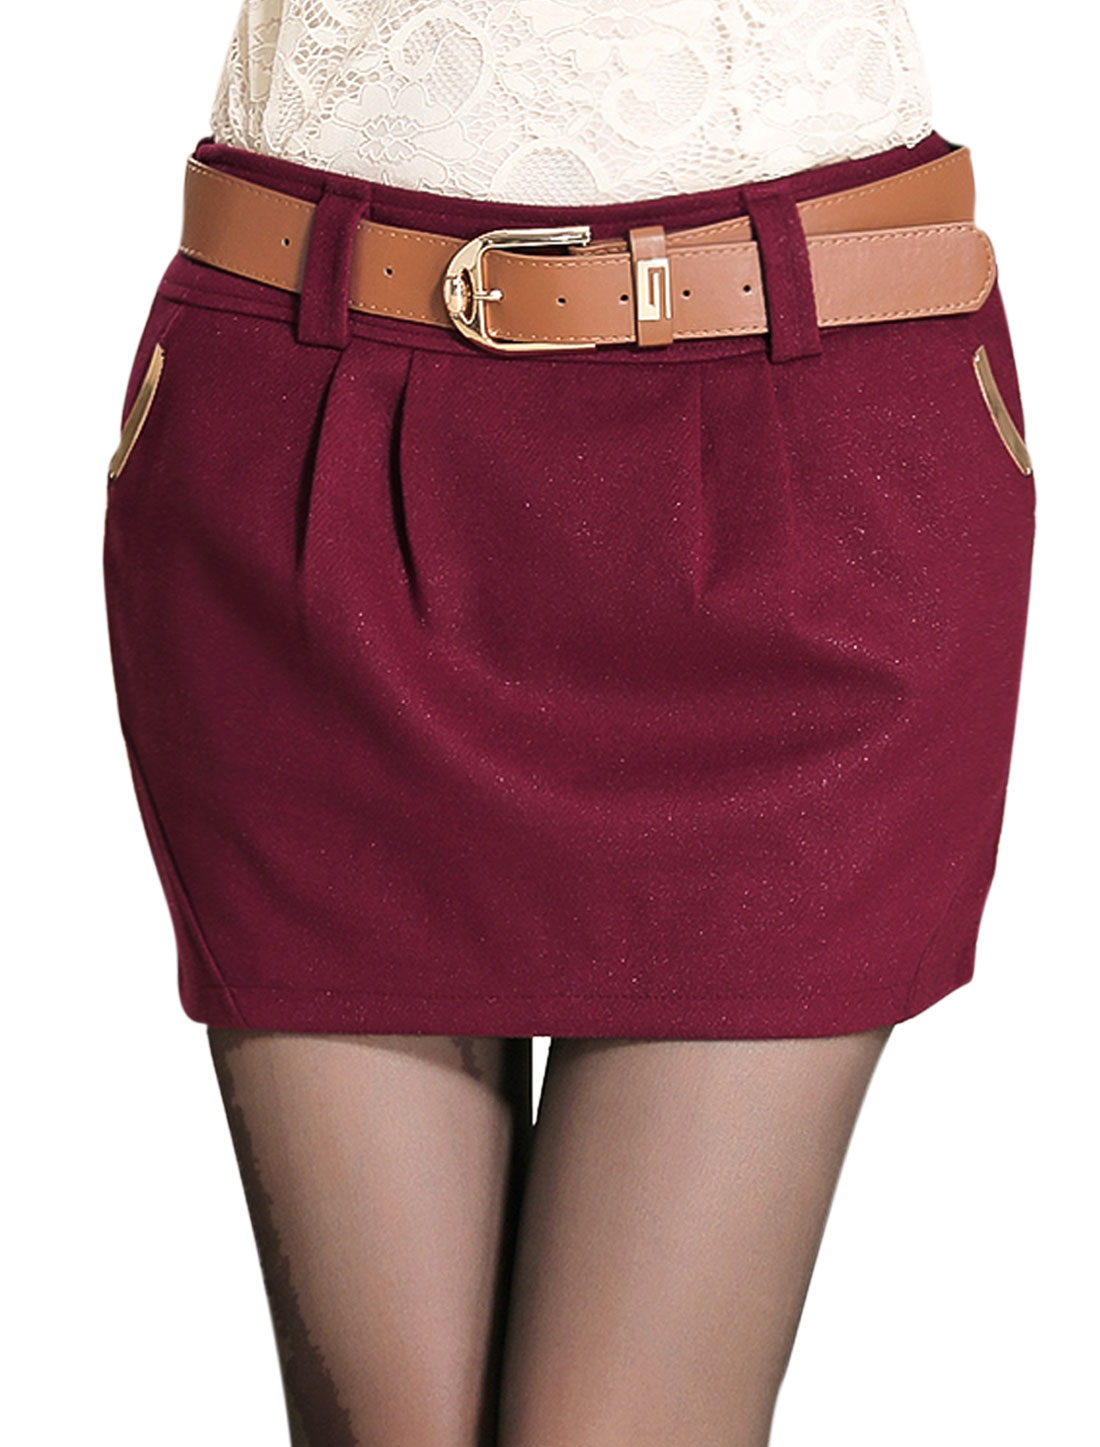 Ladies Burgundy Mid Rise Hidden Zip Closure Side Belt Loop Leisure Skirt L